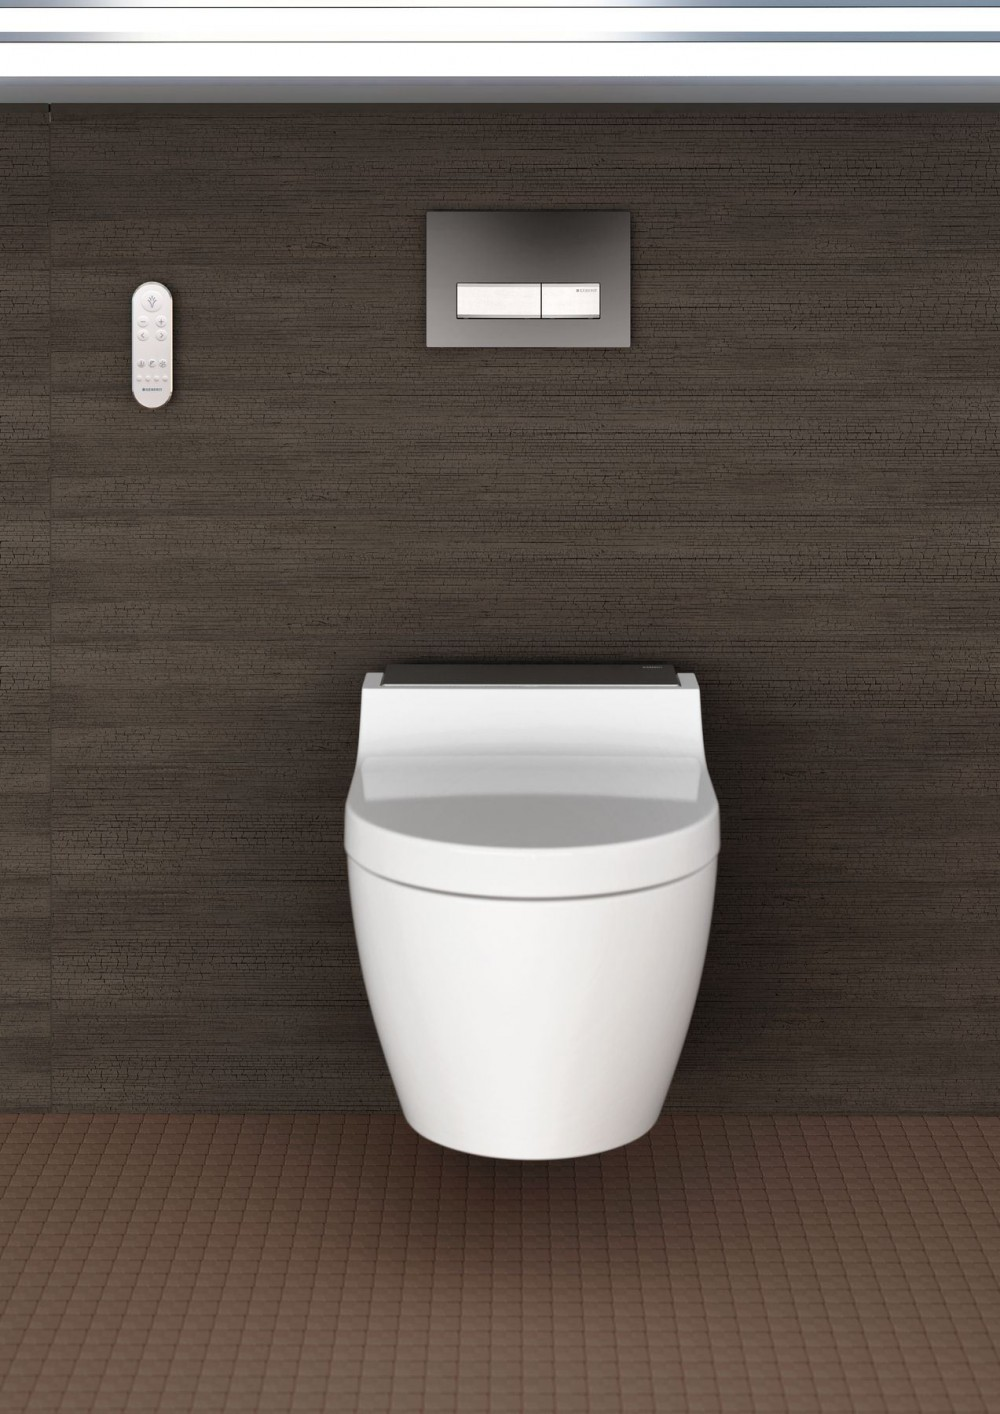 geberit aquaclean tuma comfort complete shower toilet set. Black Bedroom Furniture Sets. Home Design Ideas